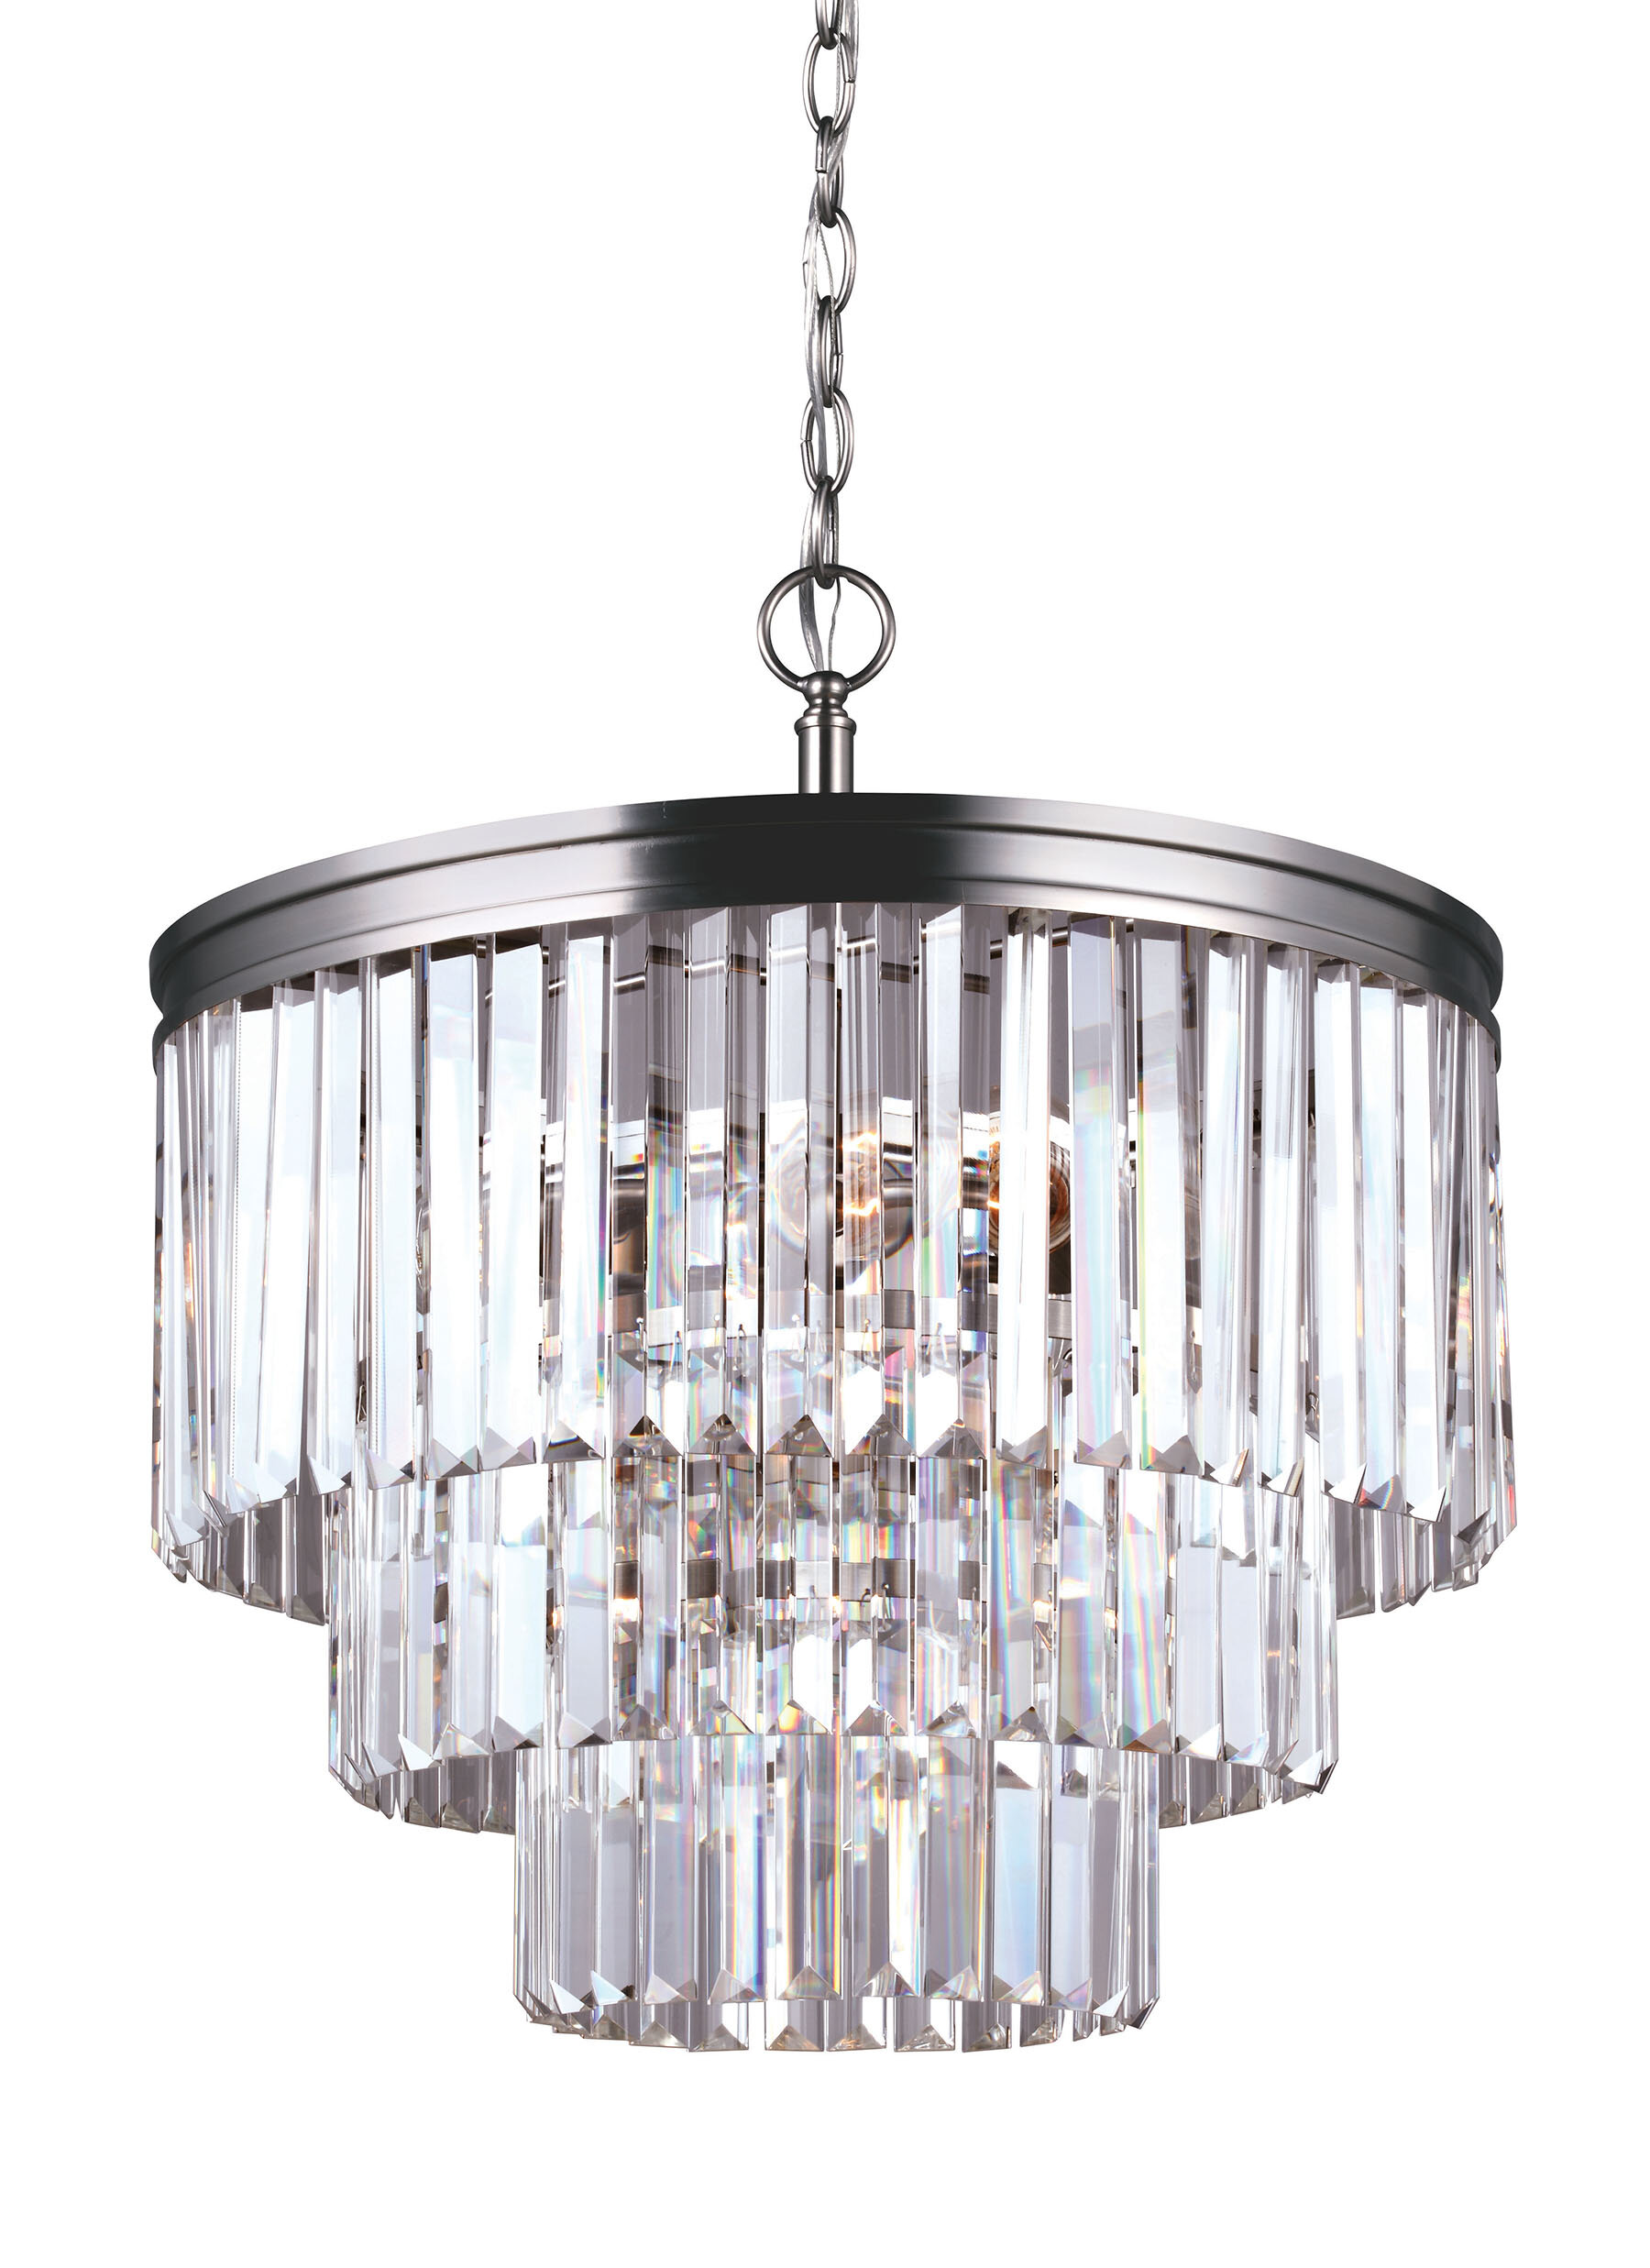 Domenique traditional 4 light crystal chandelier reviews allmodern mozeypictures Image collections